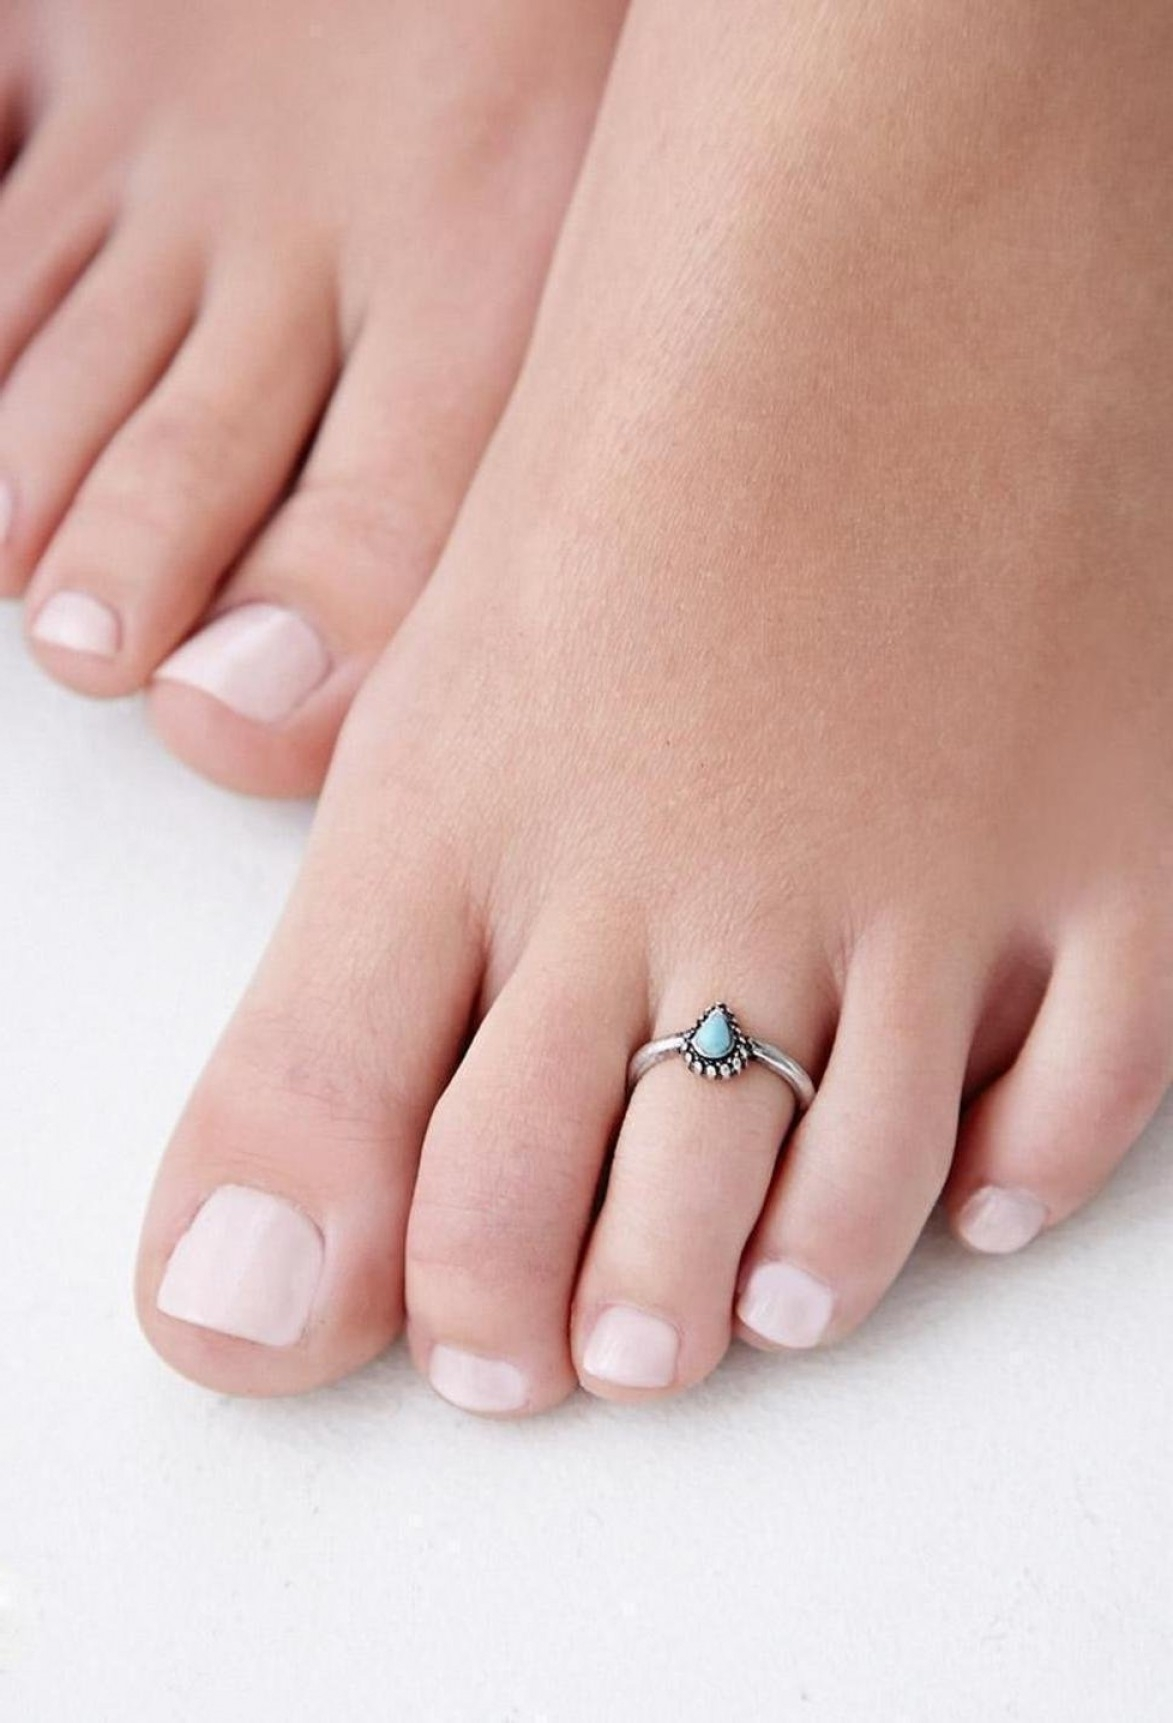 Affordable & Comfortable Toe Rings For Women | Trends4Us Pertaining To Most Current Toe Rings For Women (View 3 of 15)